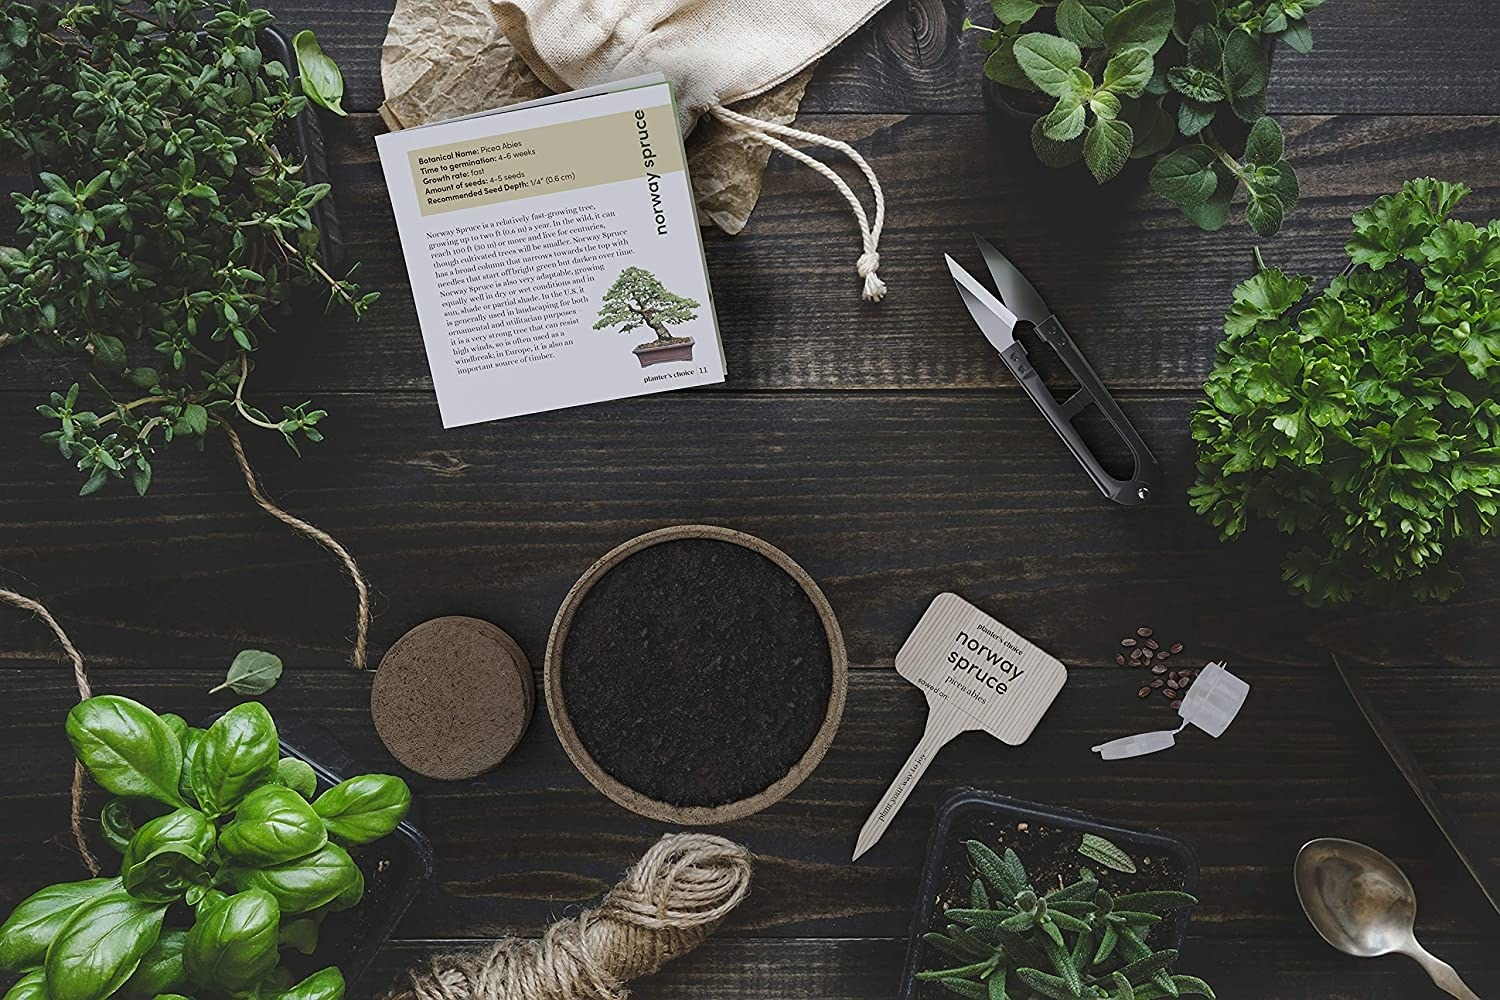 A shot of soil, labels, plants, twine, and instructions